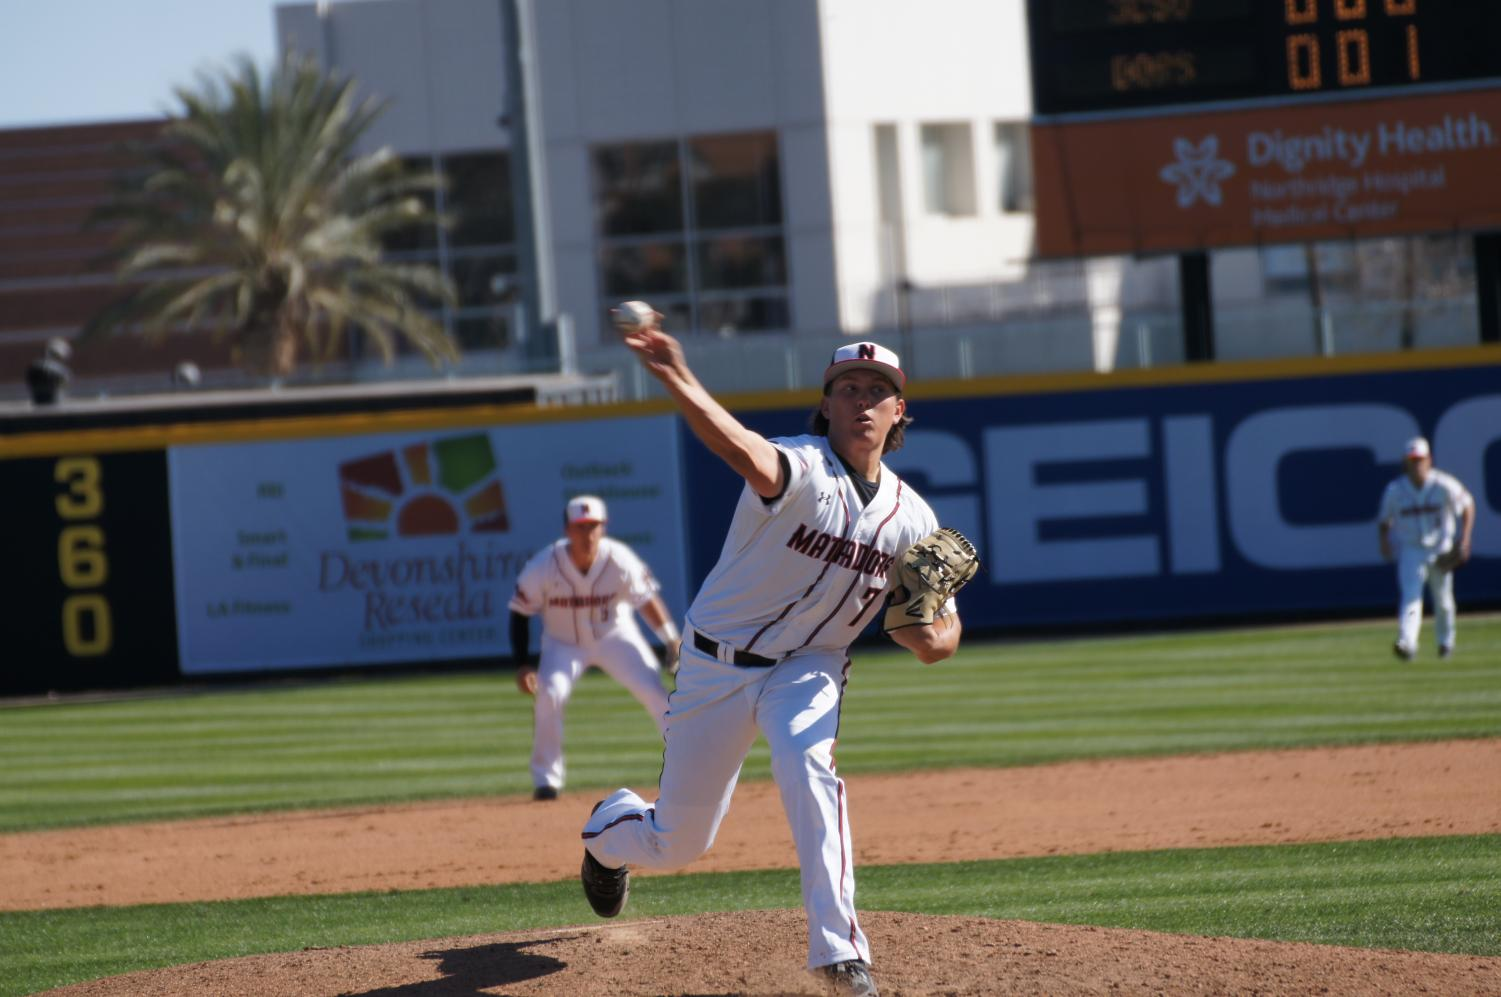 Sophomore Blake Sodersten pitching against San Diego State at Matador Field on March 12, 2019.